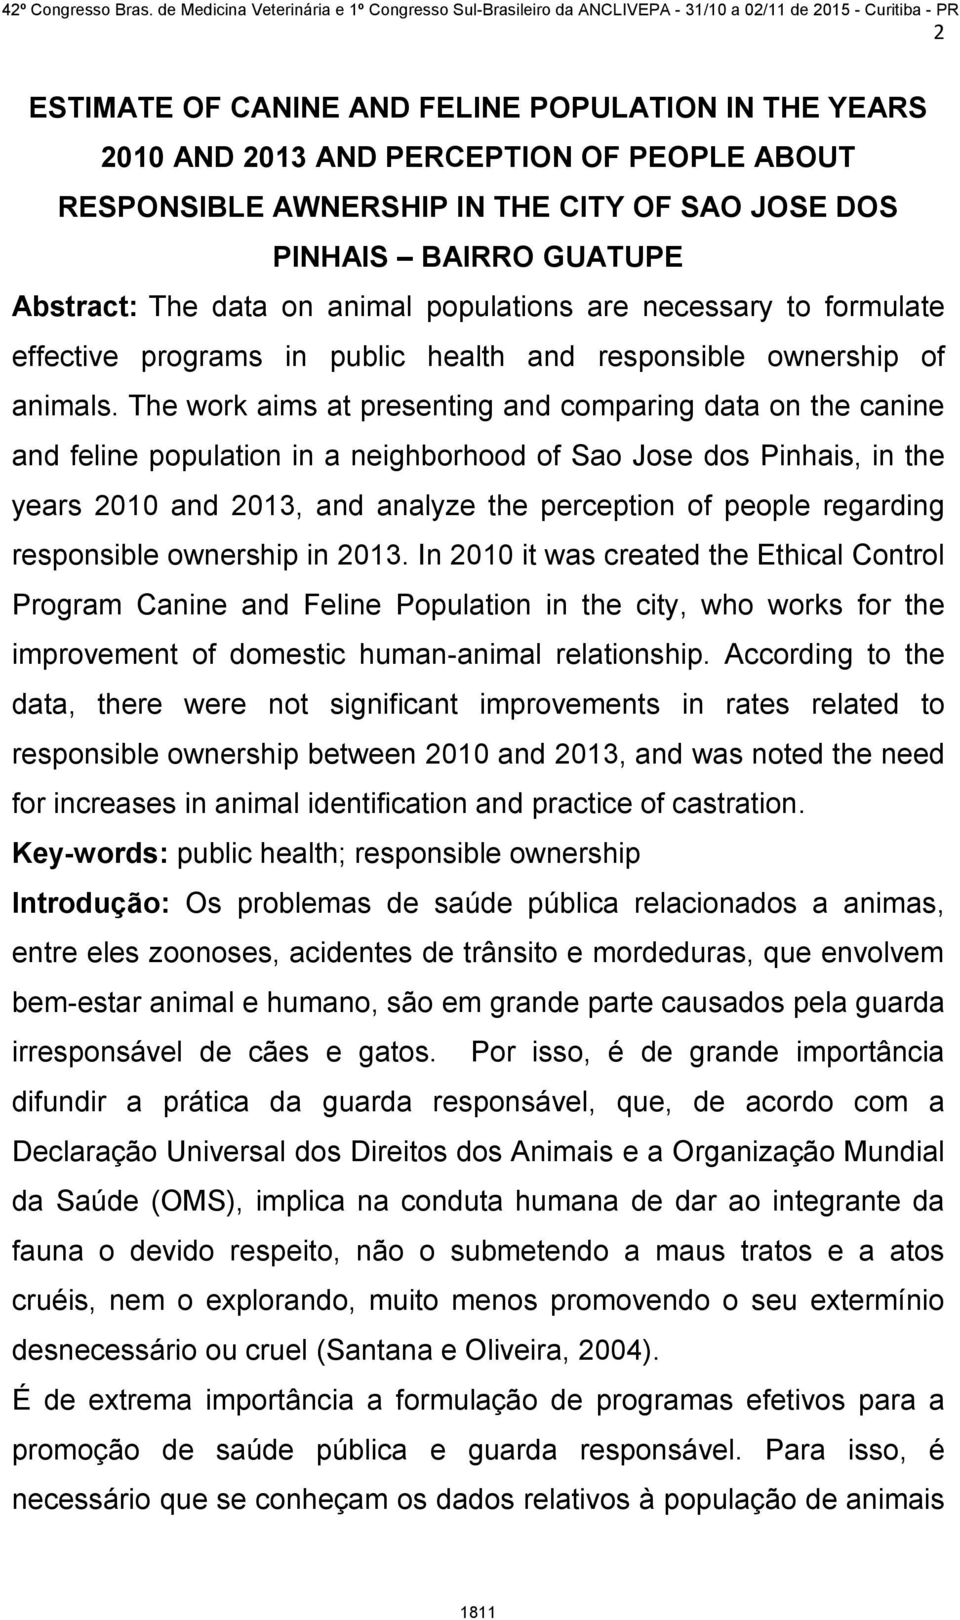 The work aims at presenting and comparing data on the canine and feline population in a neighborhood of Sao Jose dos Pinhais, in the years 2010 and 2013, and analyze the perception of people